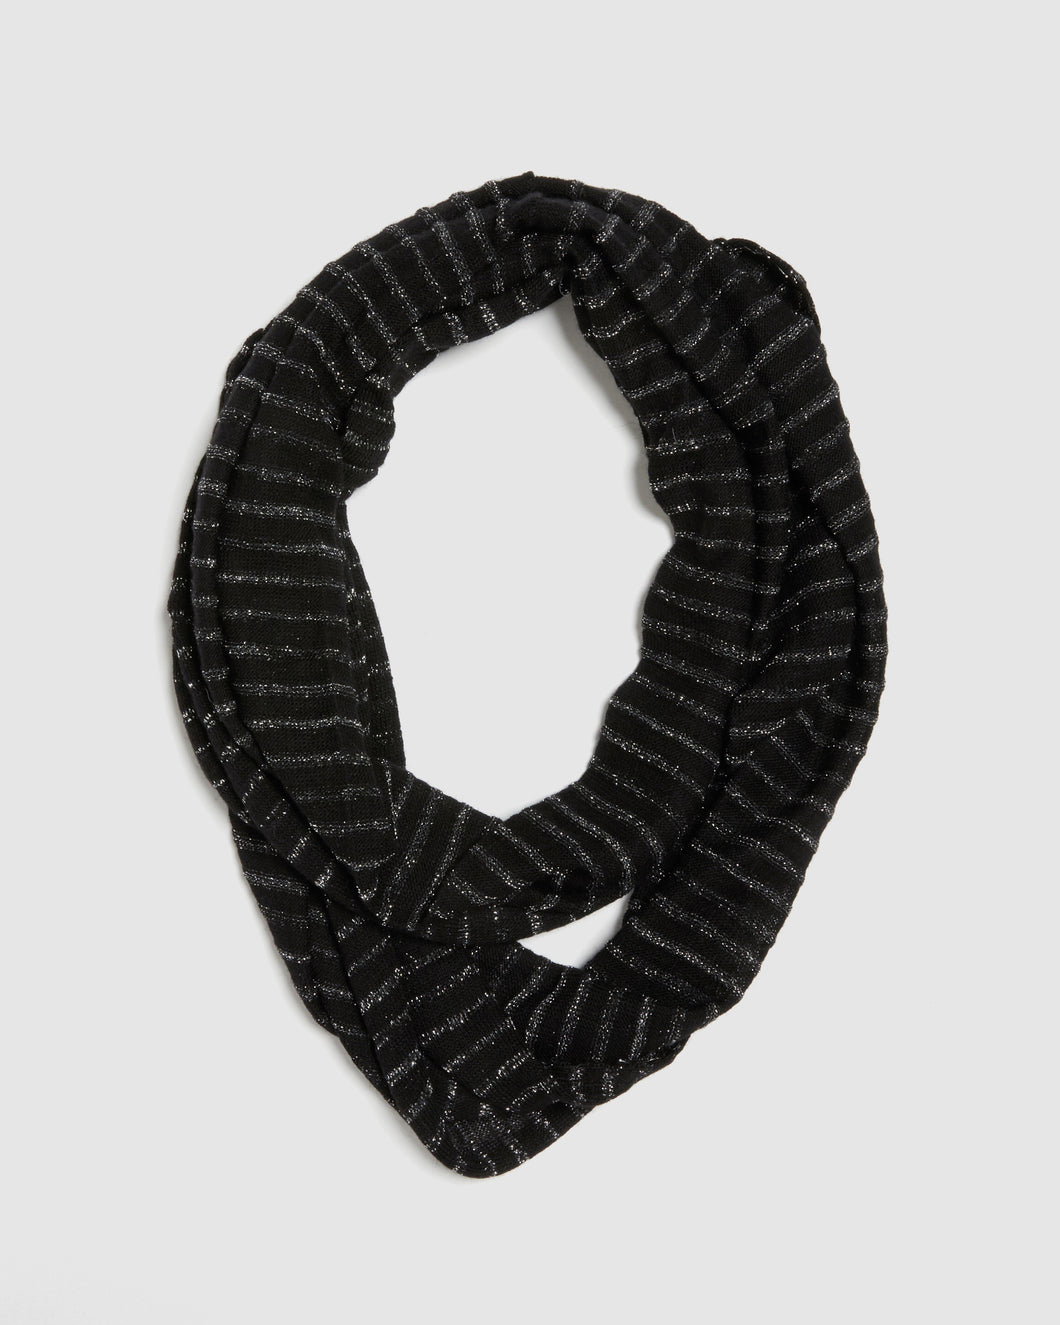 kate and confusion ladies wool knit eternity scarf in black with silver lurex